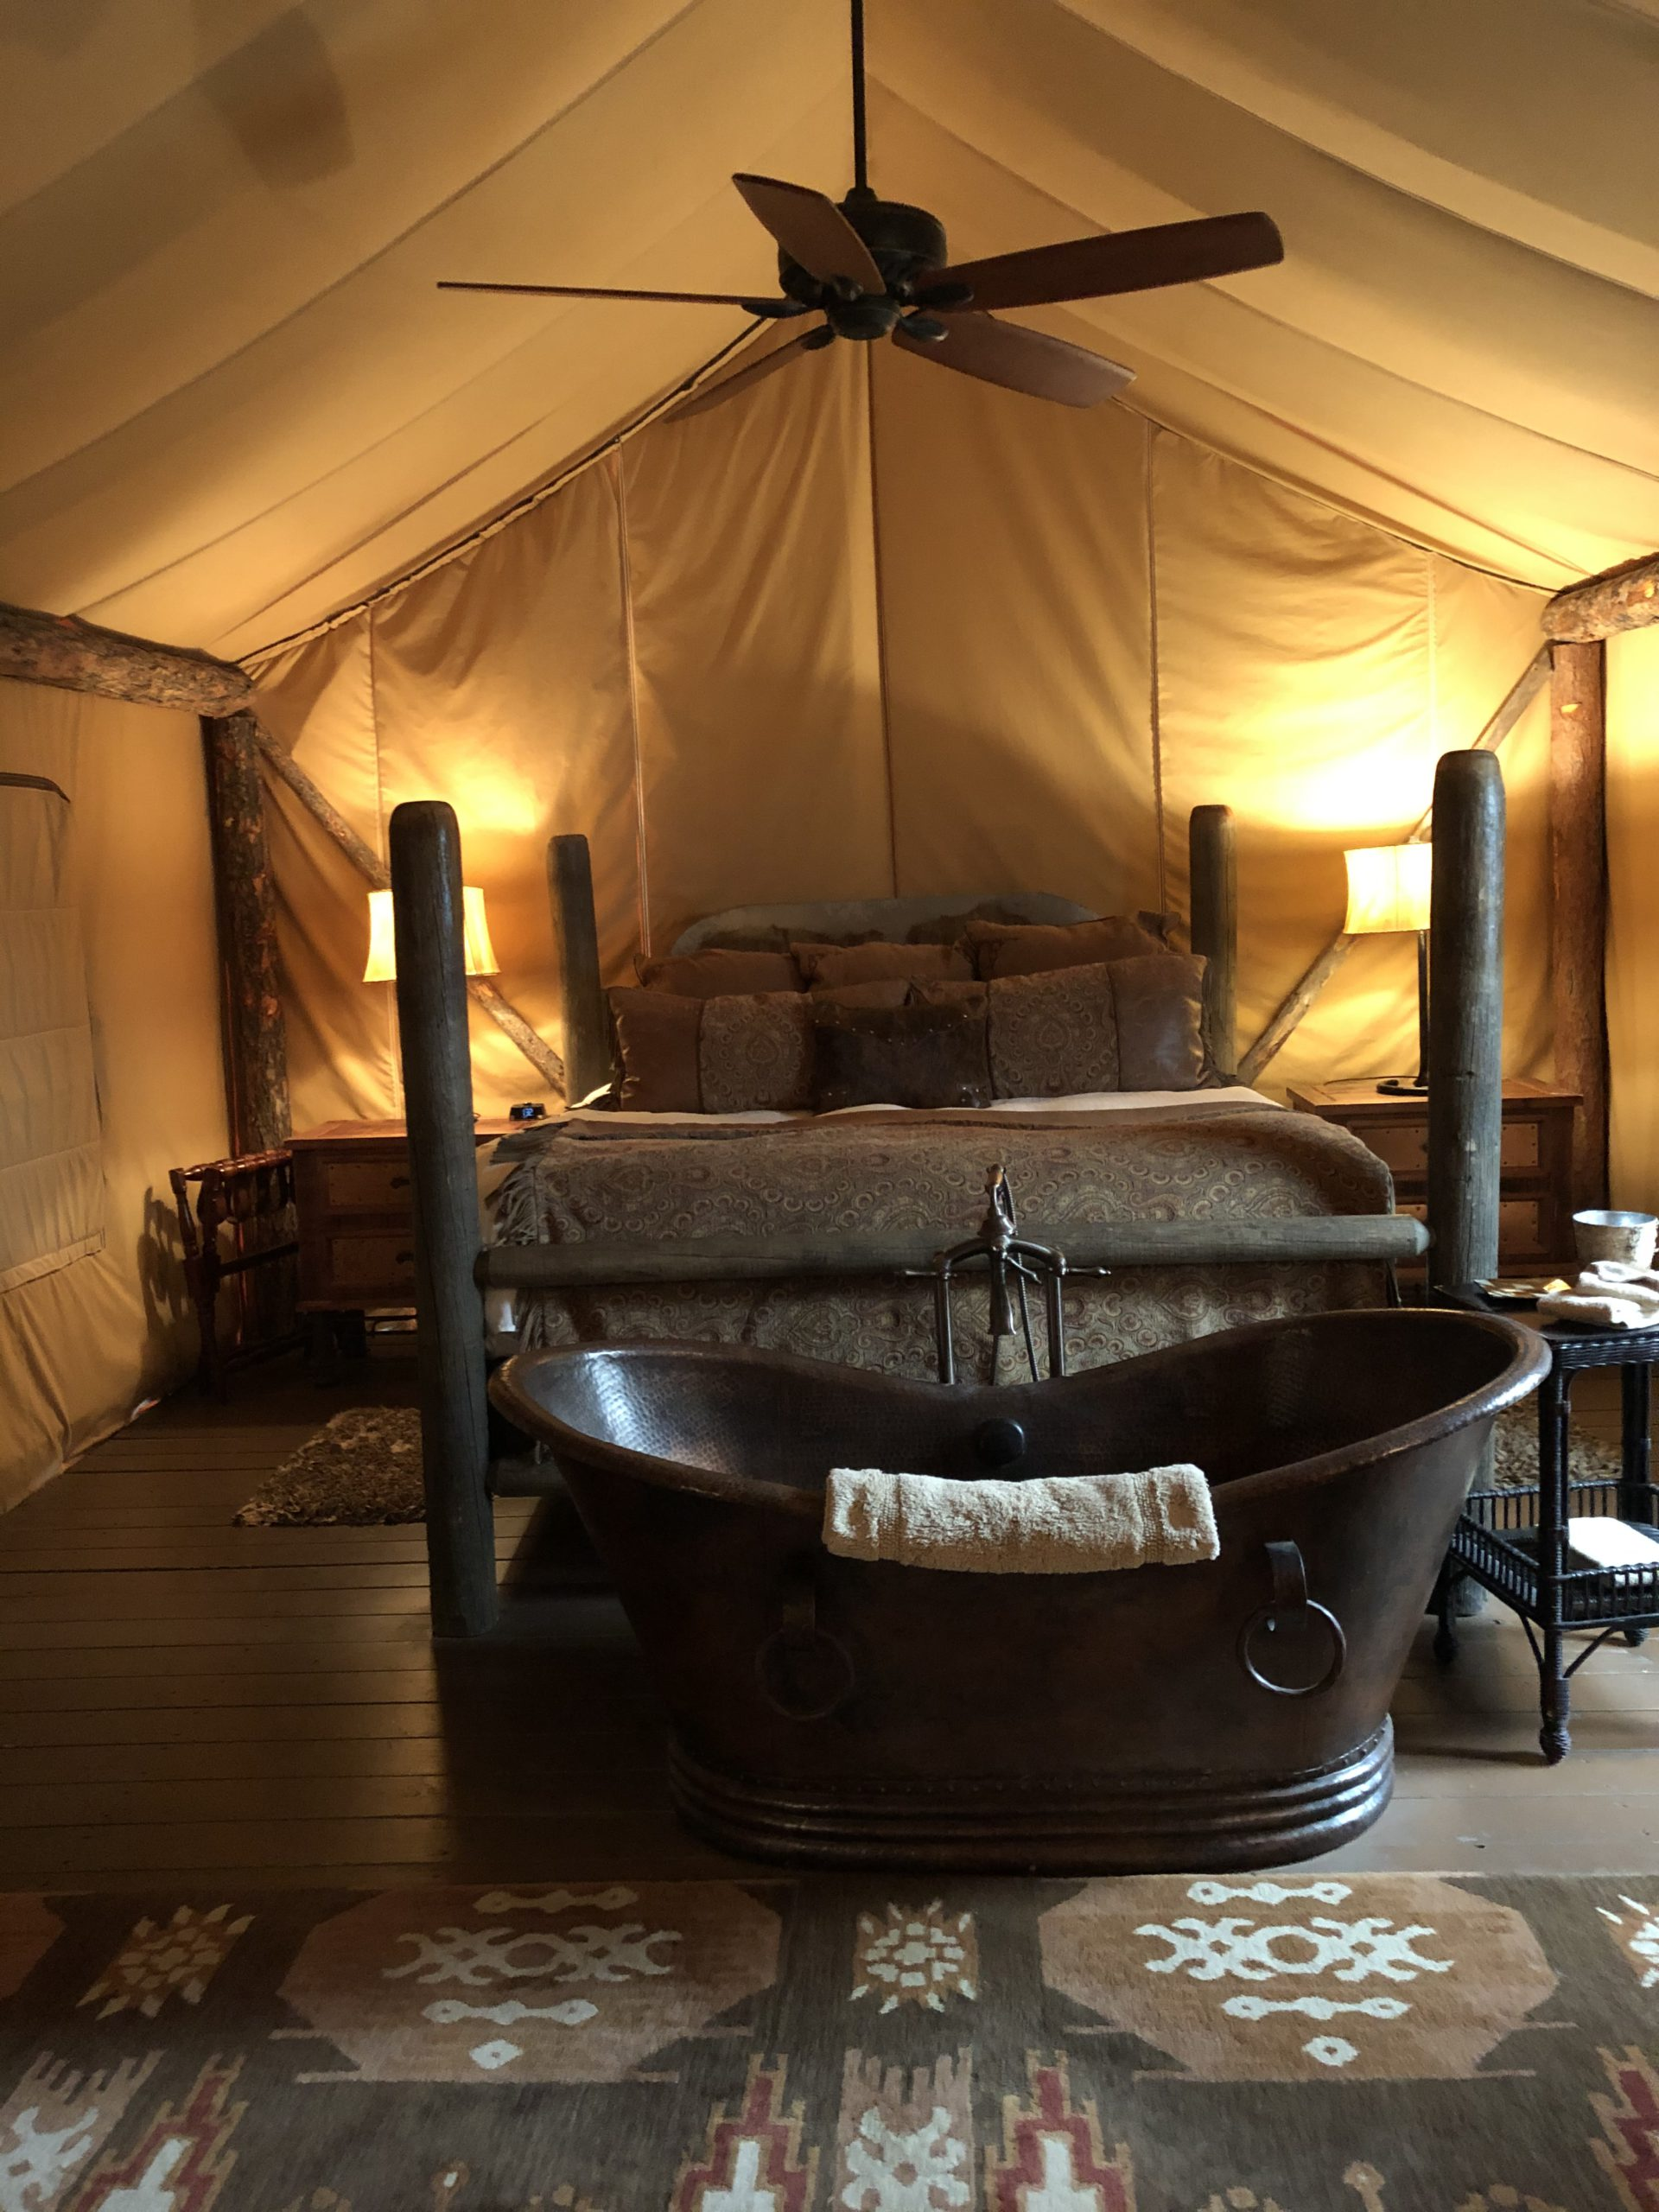 Inside our glamping tent at The Resort at Paws Up